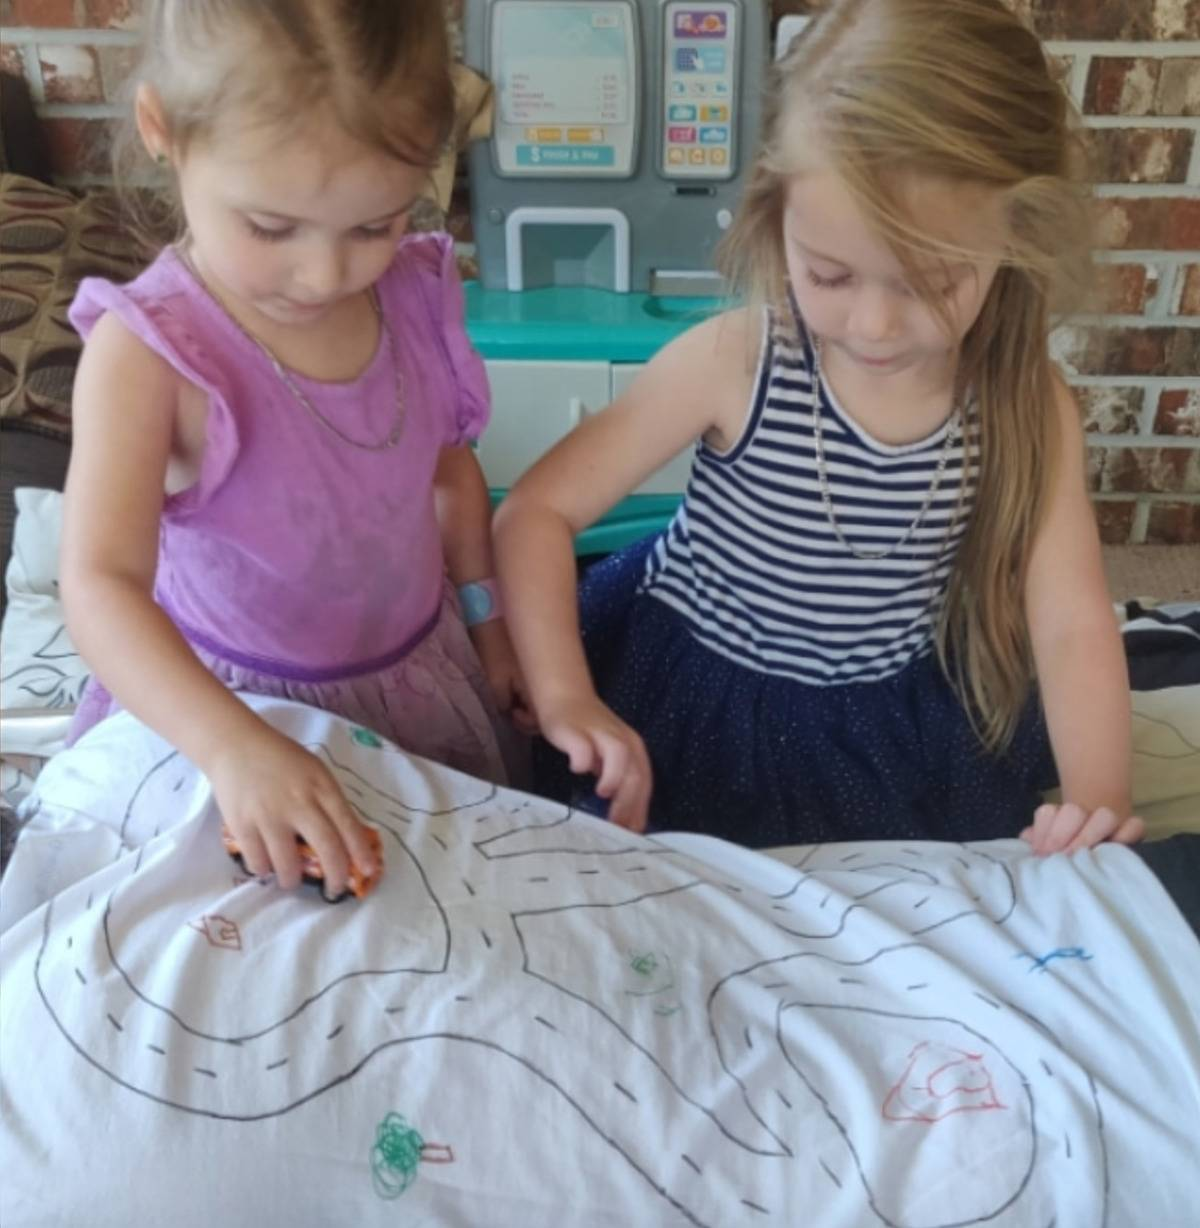 girls play with cars on track drawn on back of dad's shirt